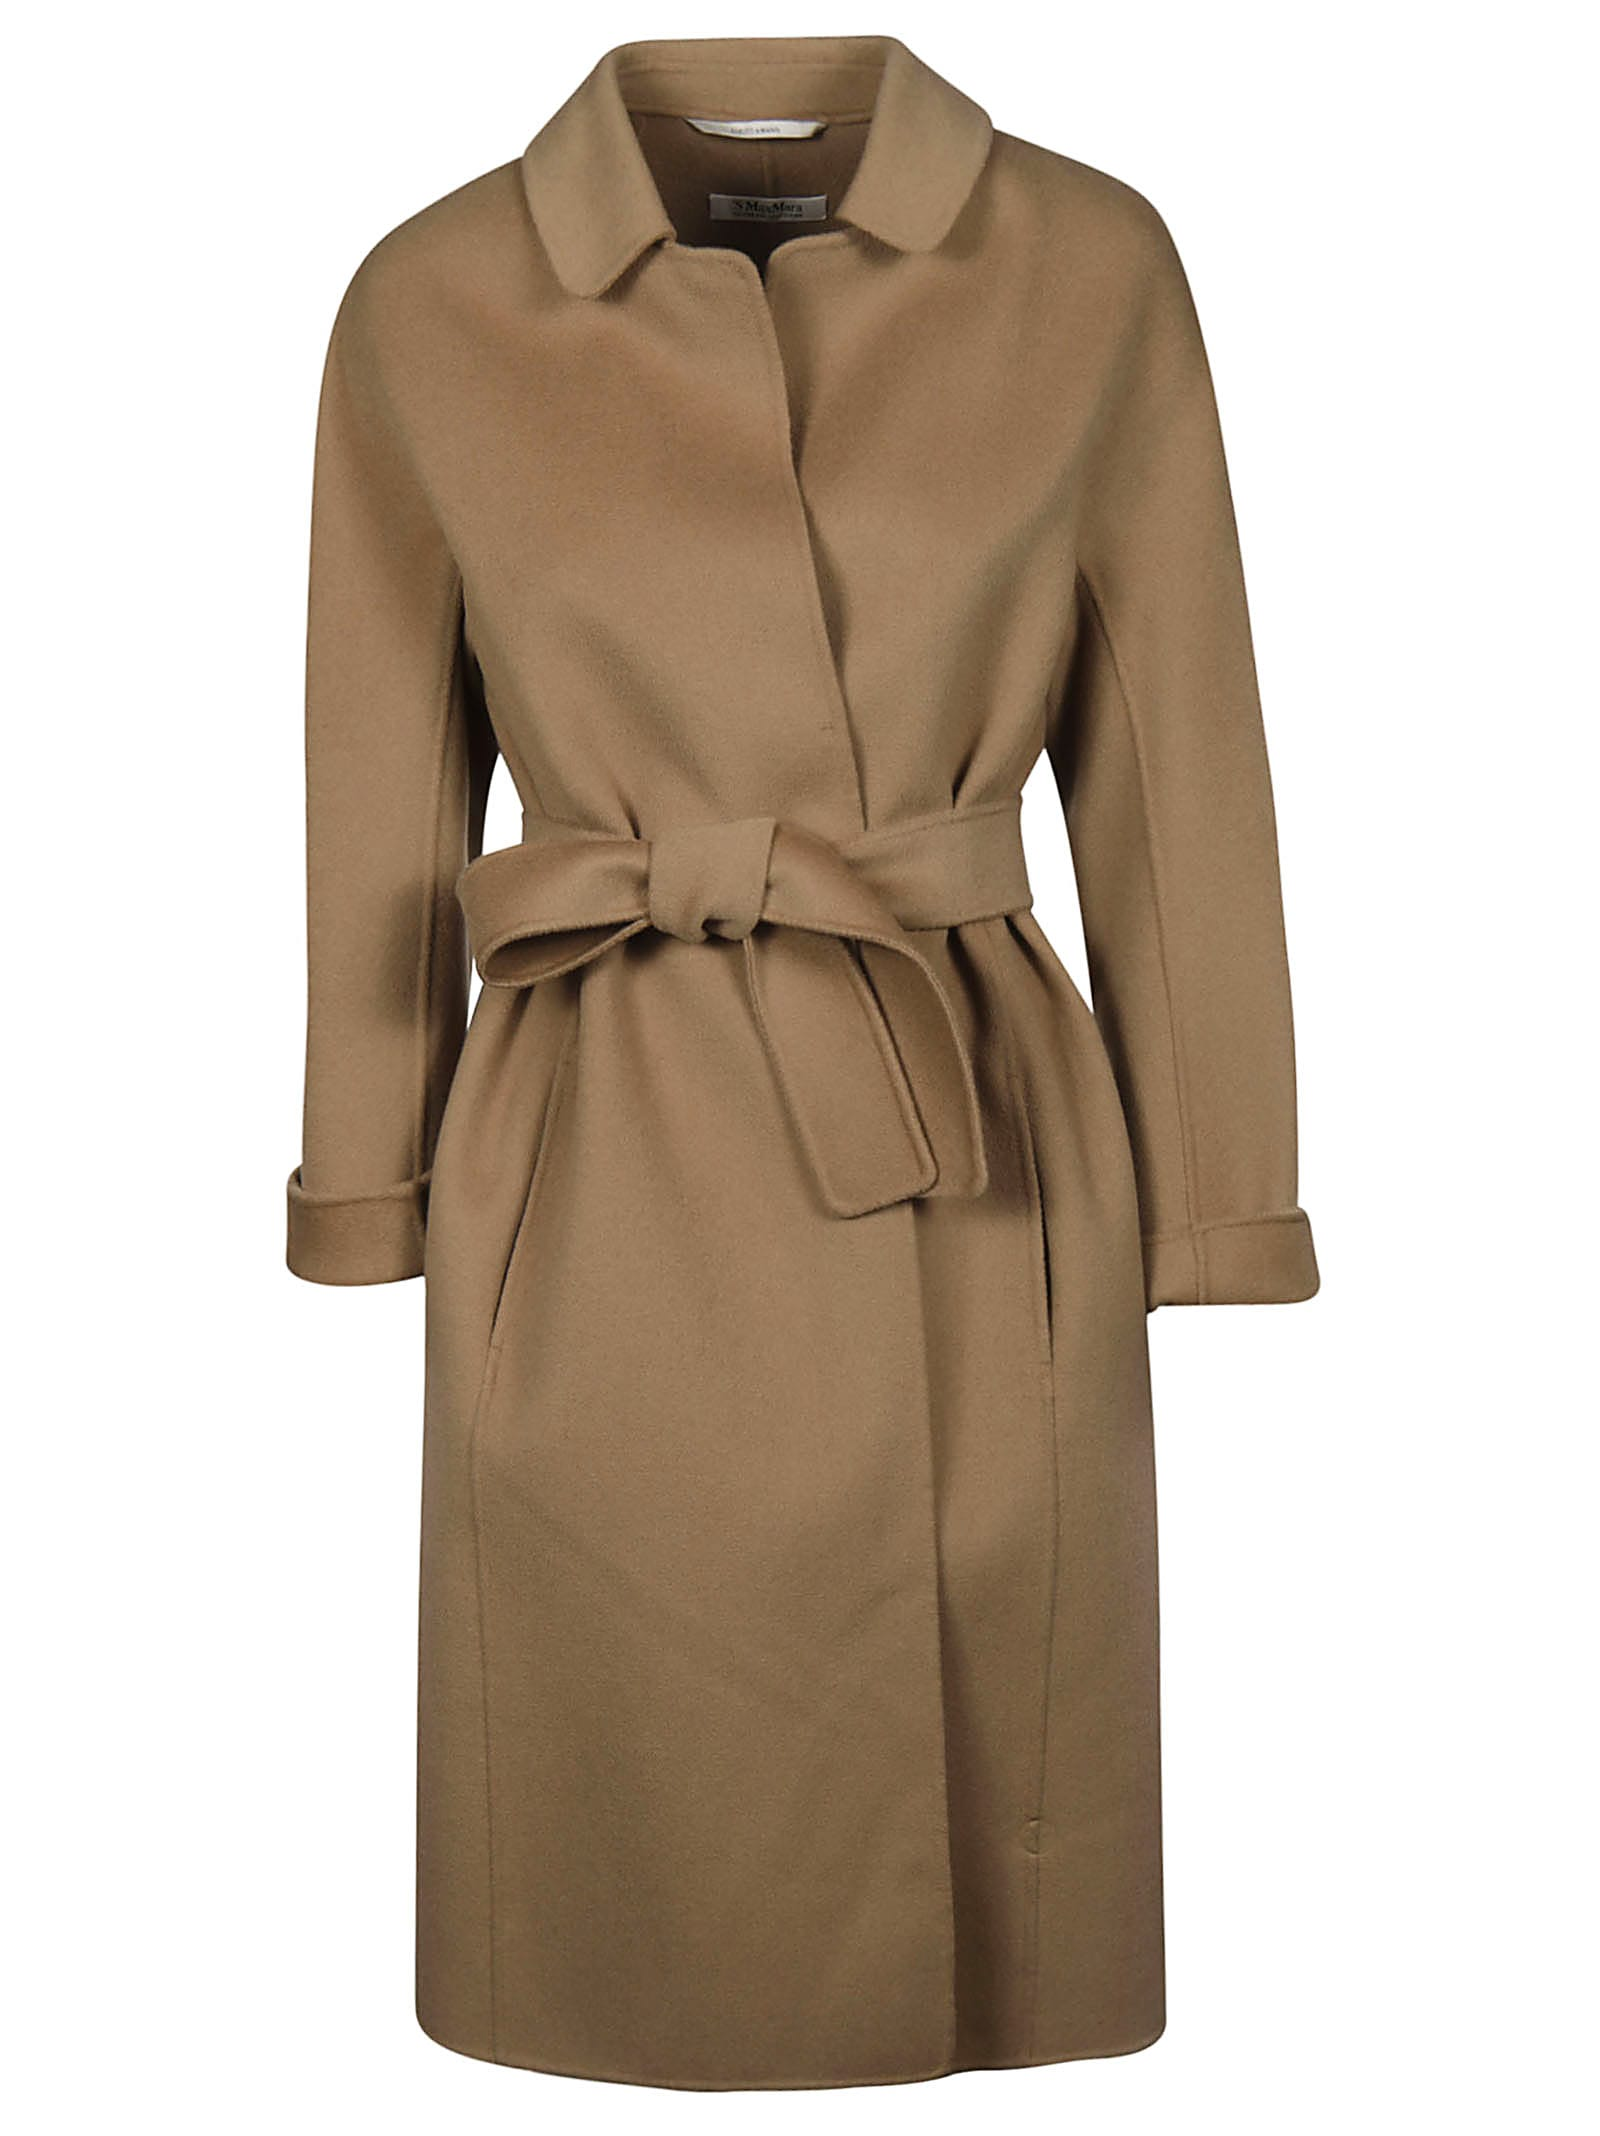 S Max Mara Here is The Cube Doraci Coat